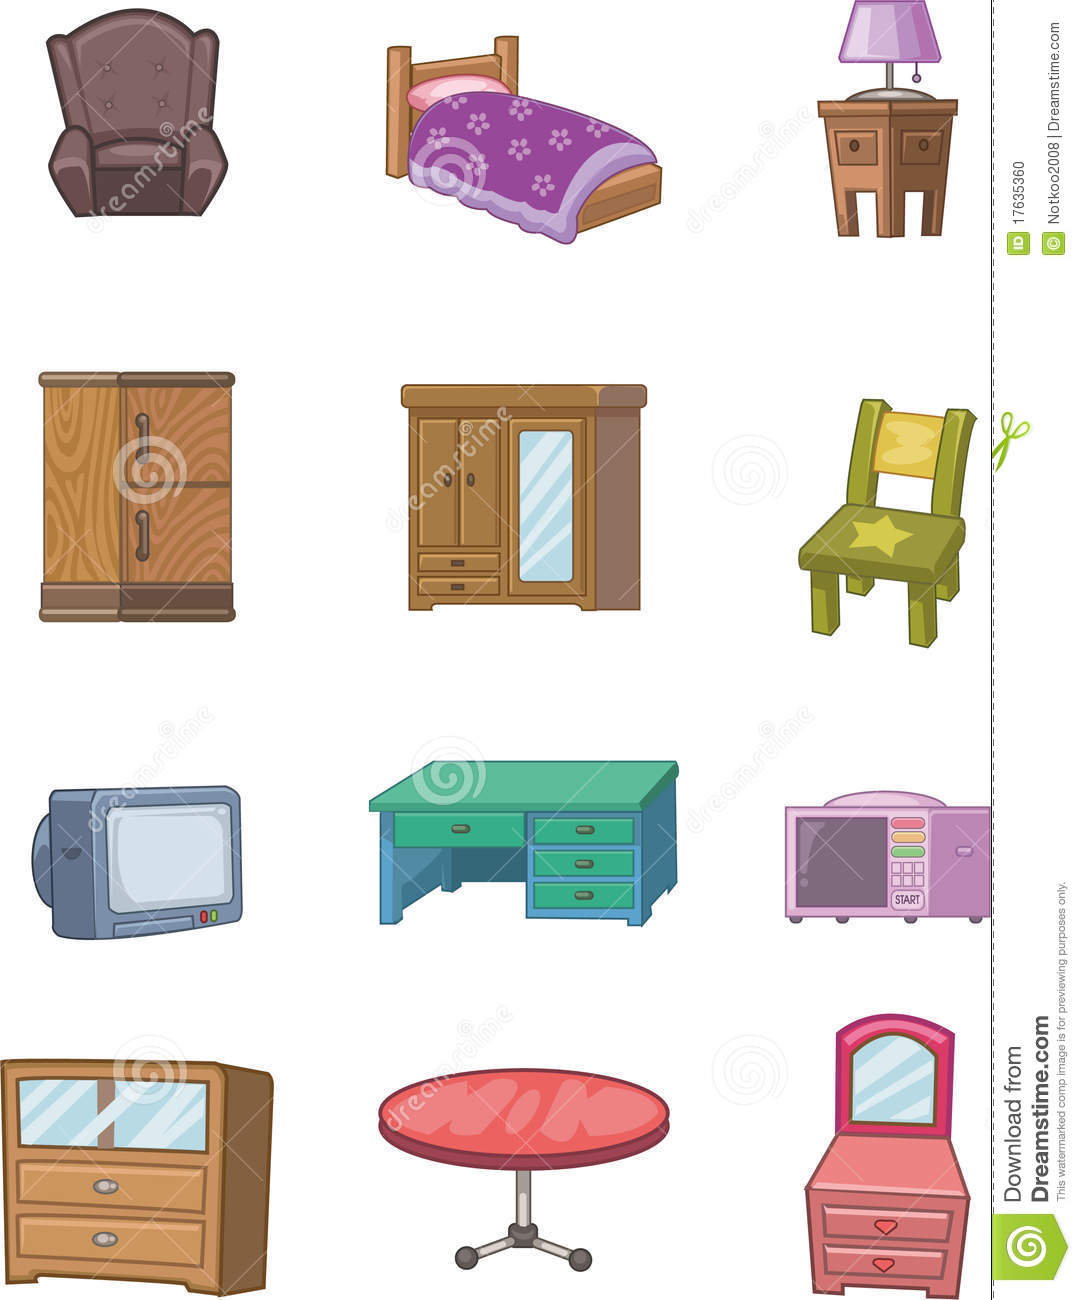 Cartoon furniture icon stock photo image 17635360 - Furniture picture ...